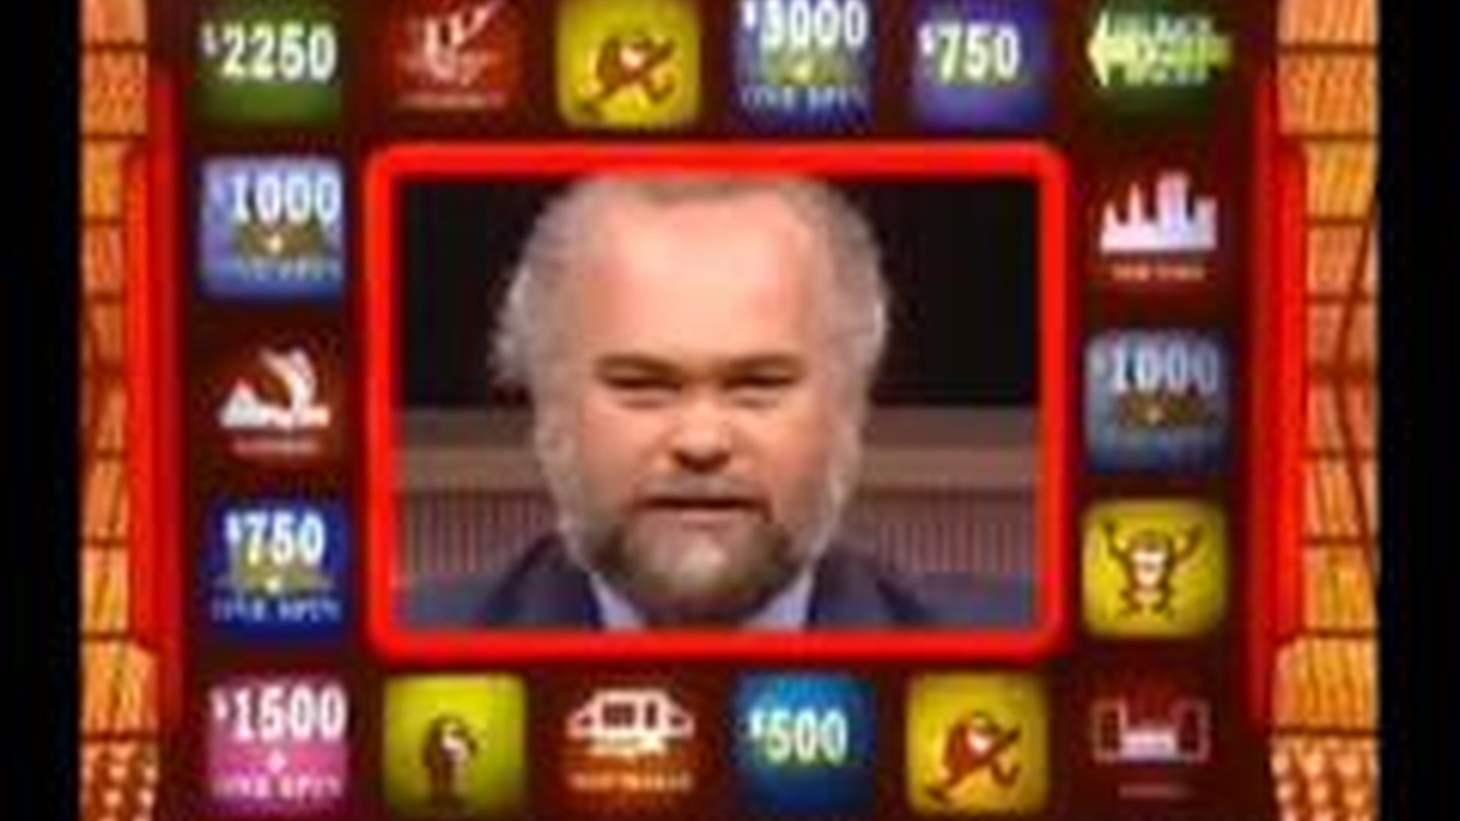 Back in the 1980's Michael Larson made the most money ever on the game show Press Your Luck -- and it was no accident. Larson had a plan to get rich that surprised everyone...